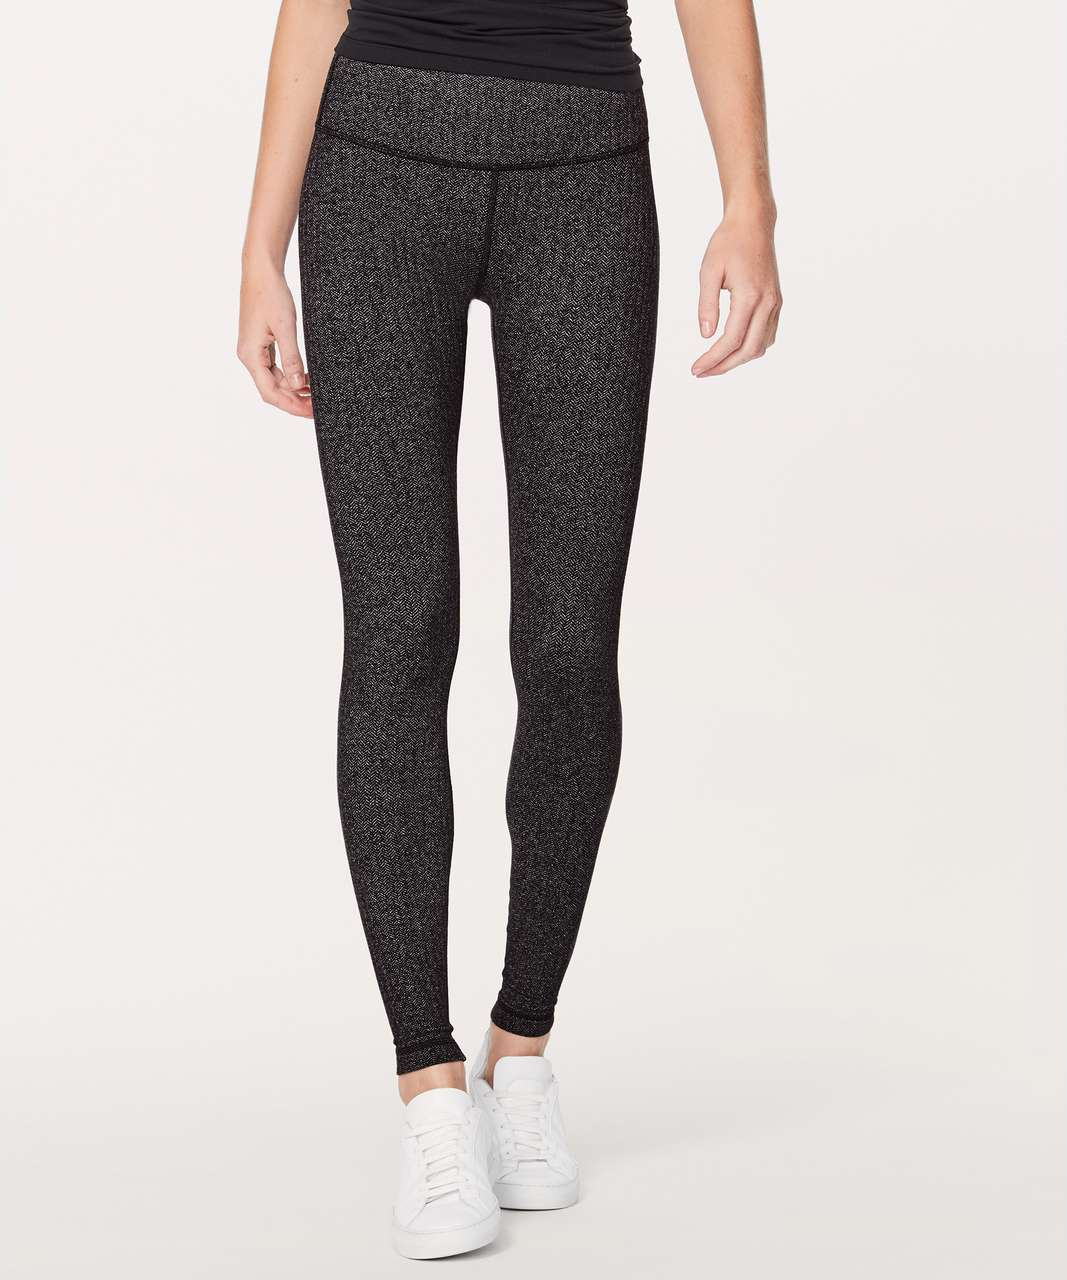 "Lululemon Wunder Under Hi-Rise Tight *28"" - Heathered Herringbone Heathered Black Black"